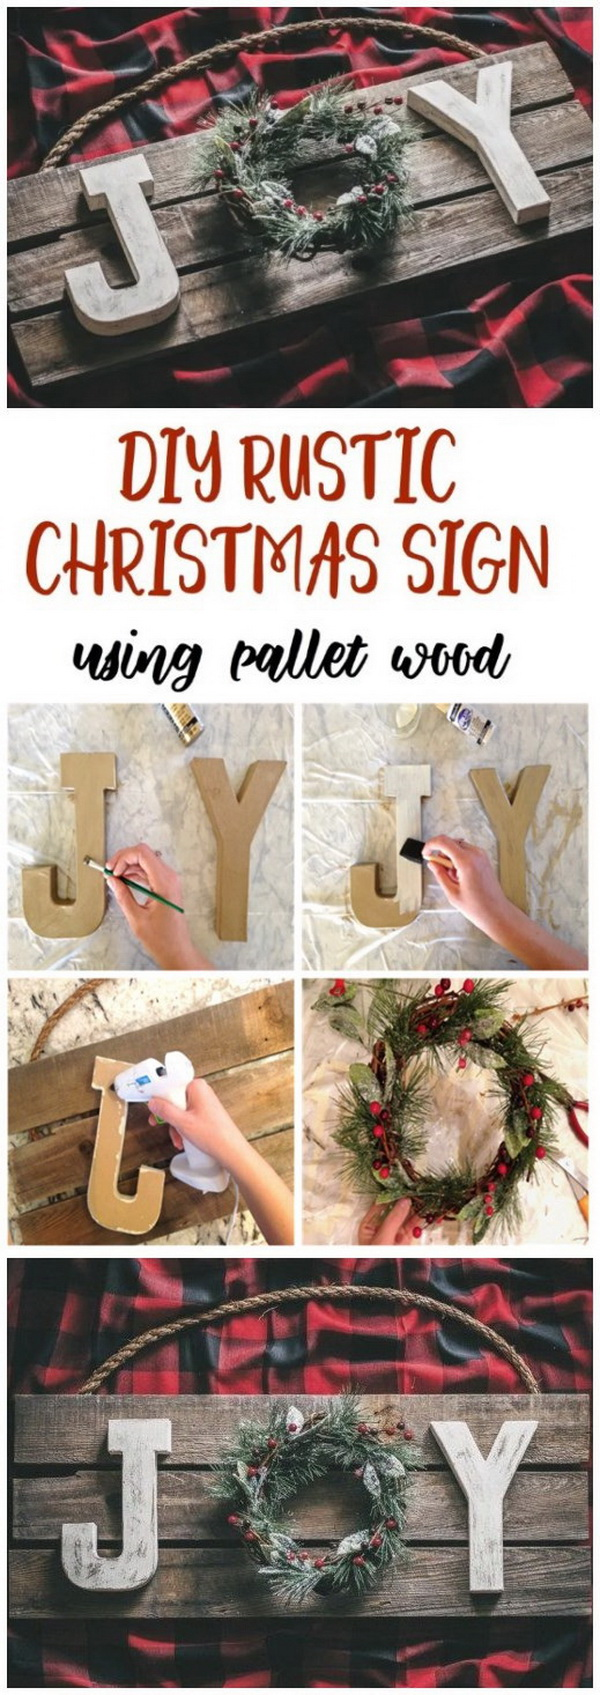 DIY Rustic Christmas Joy Sign Using Pallet Wood.